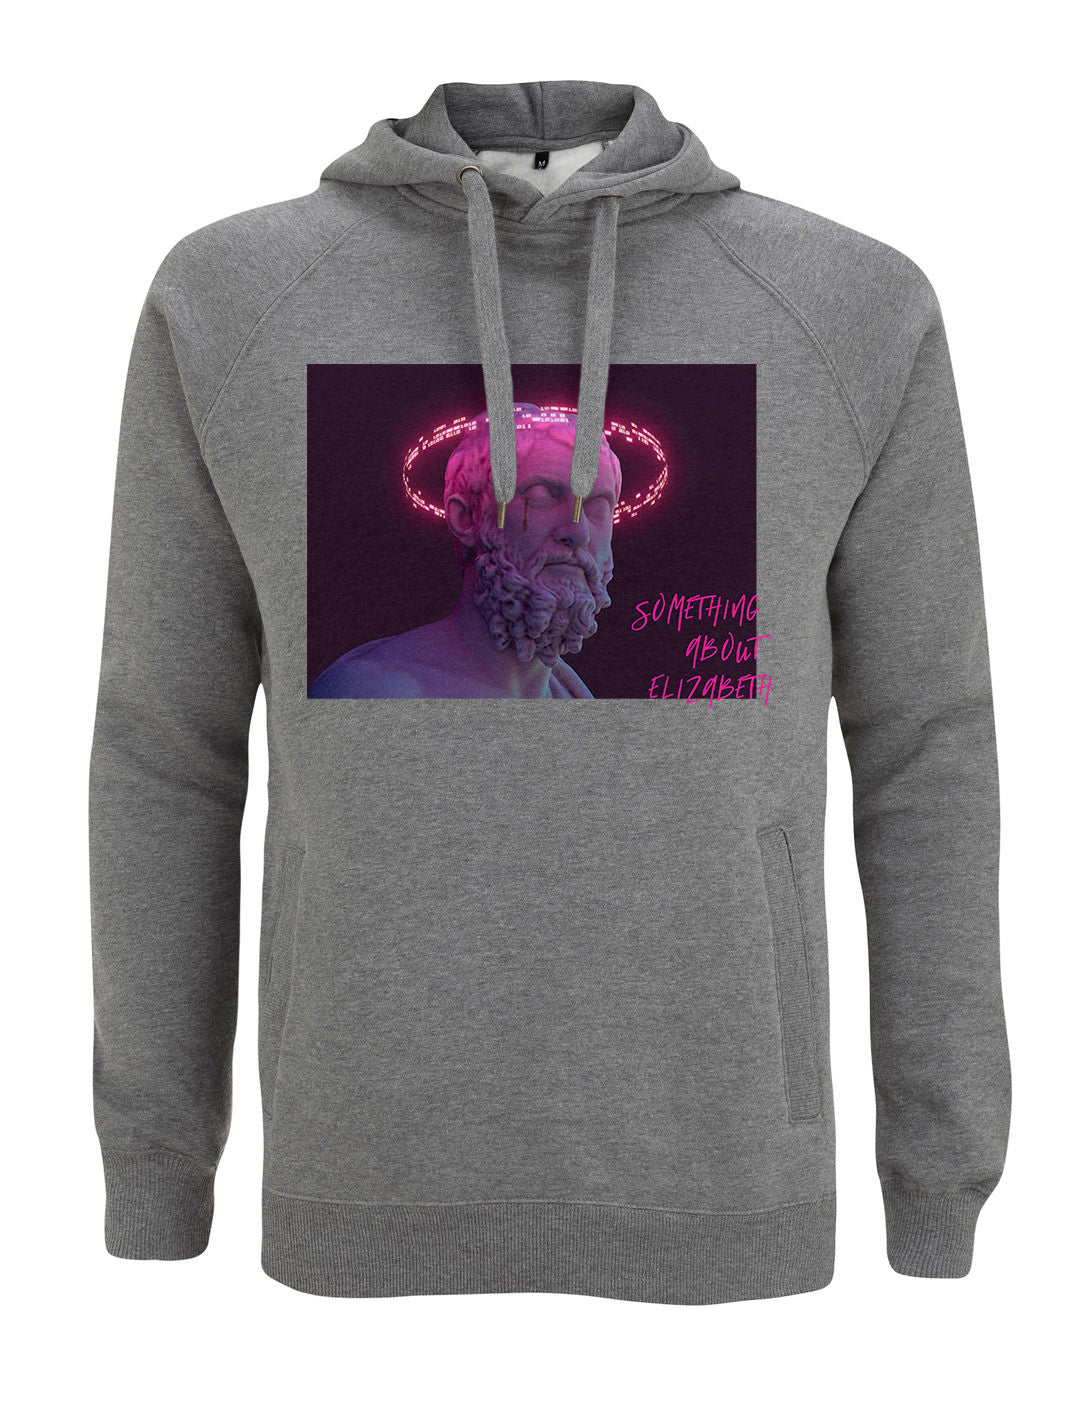 The G Code - Dark Heather Hoody